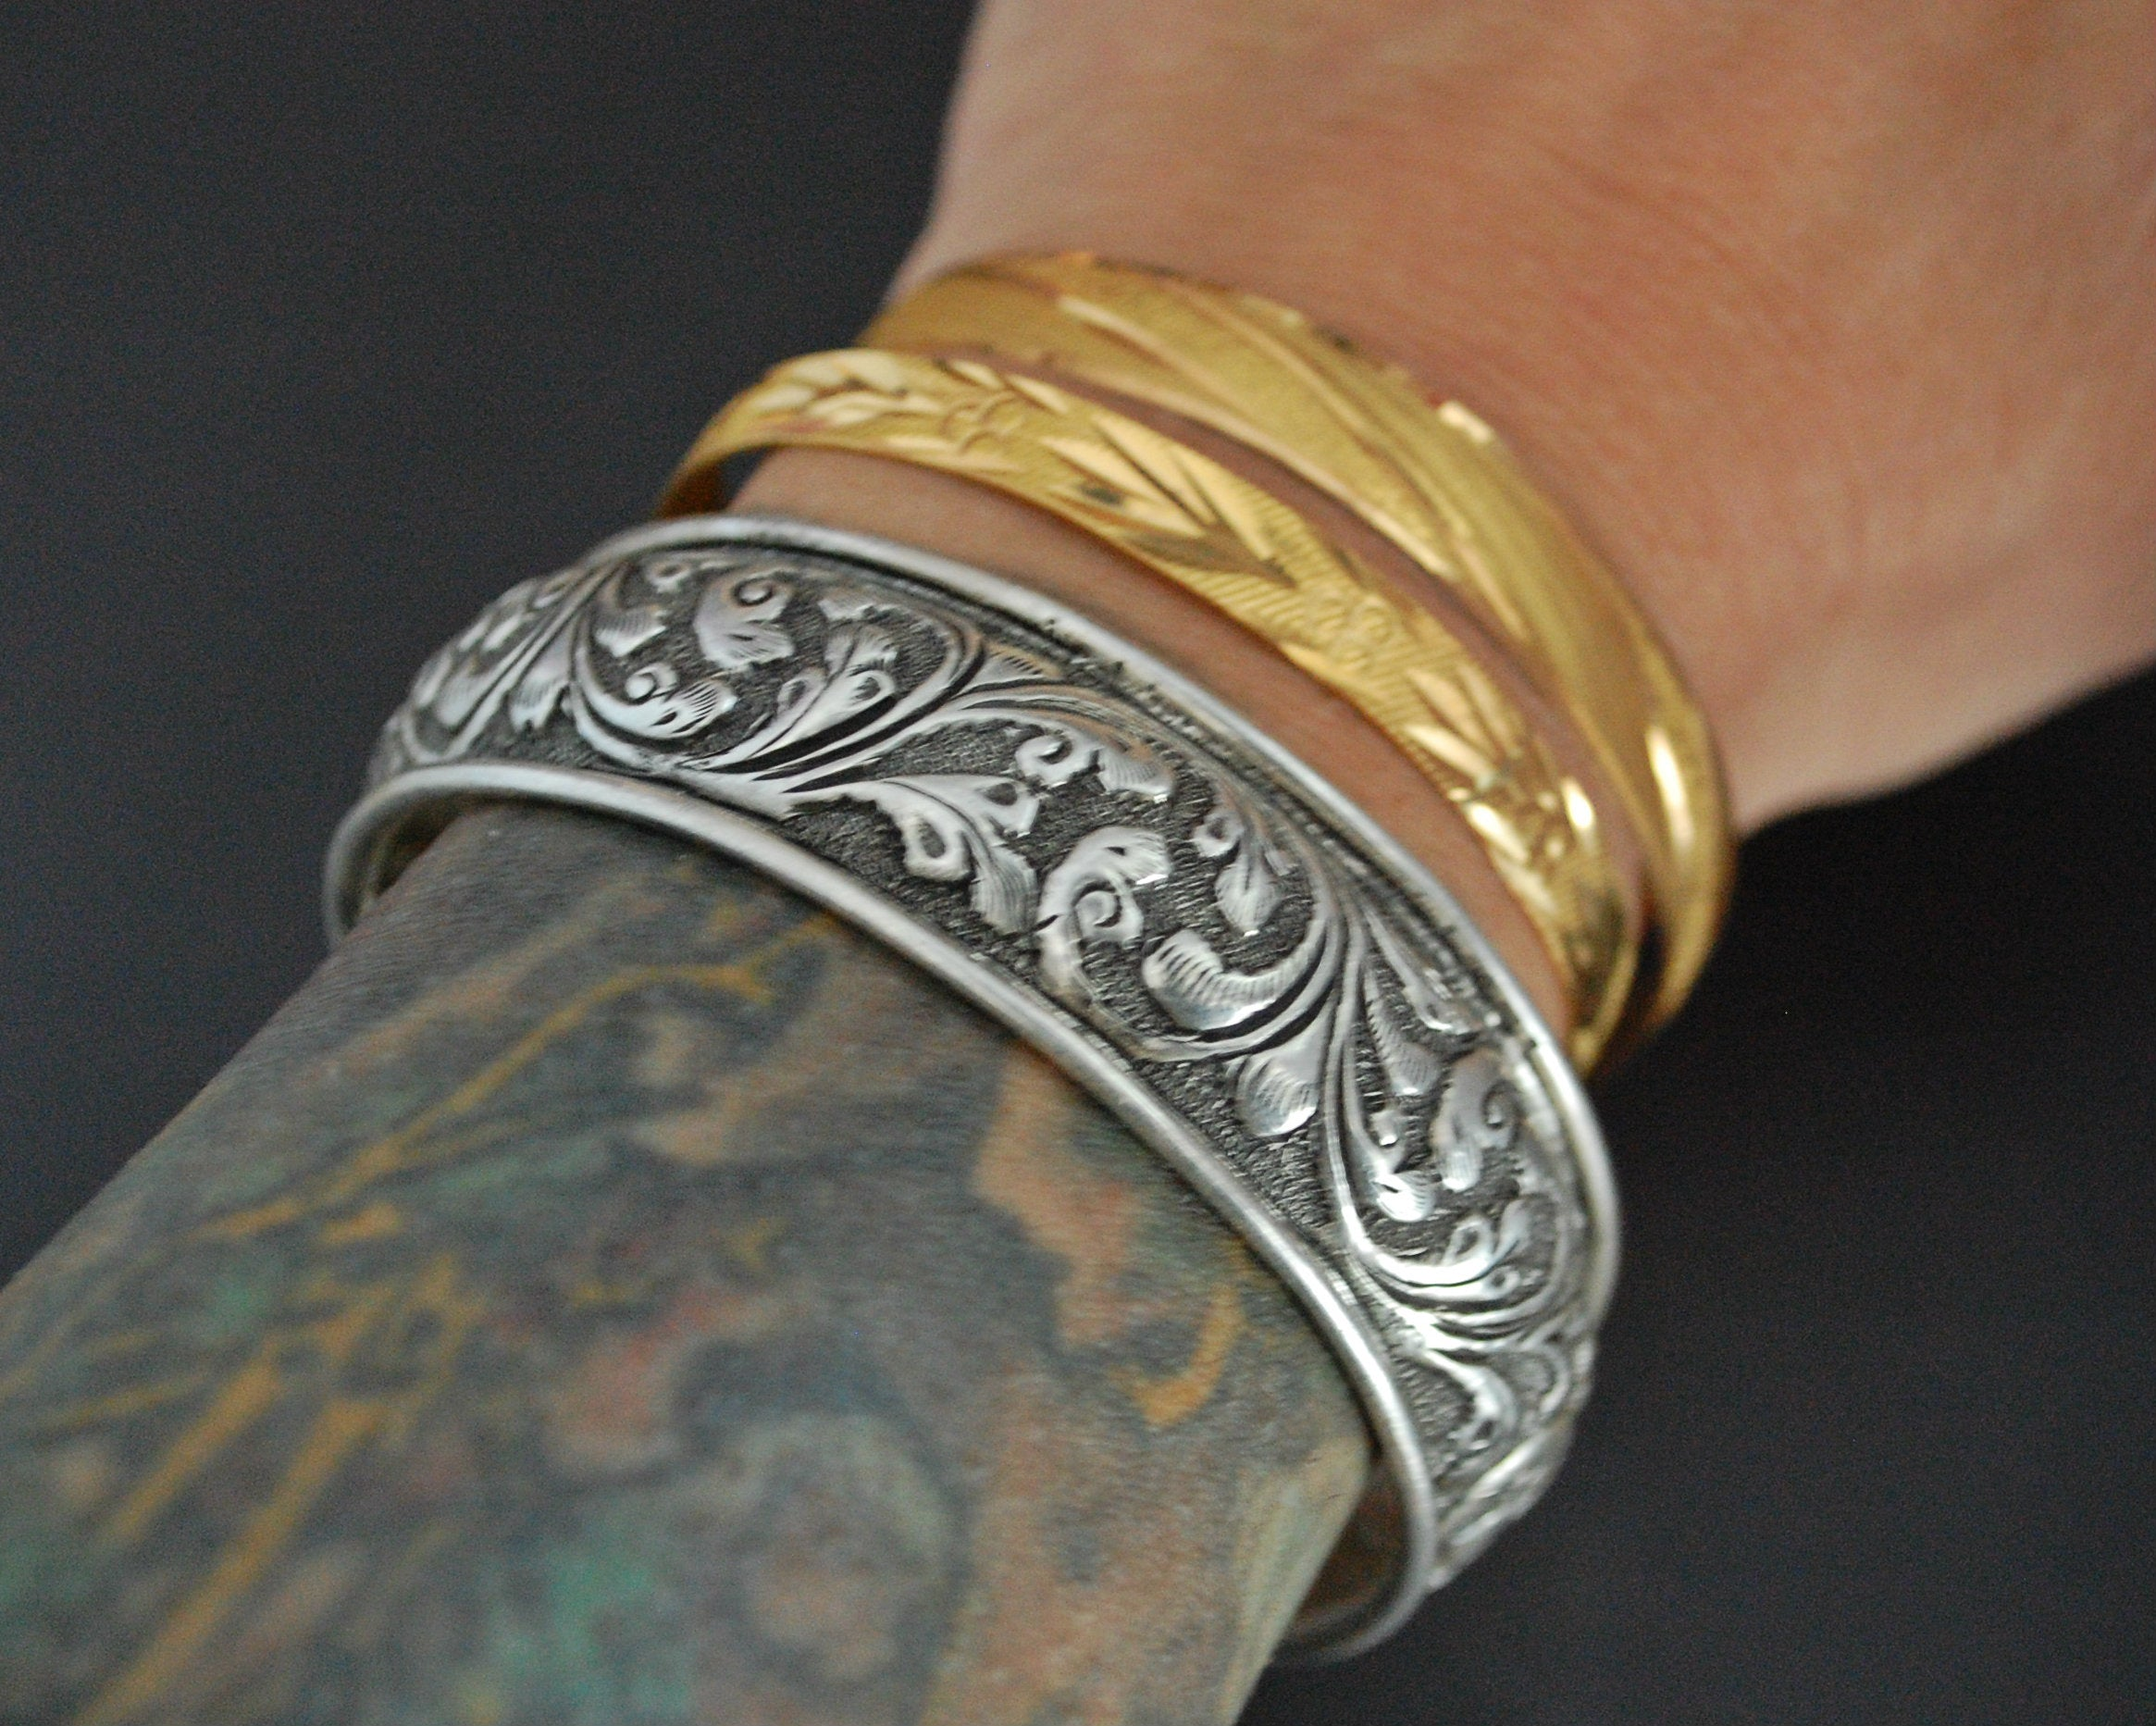 Repoussee Indian Bangle Bracelet - Sterling Silver